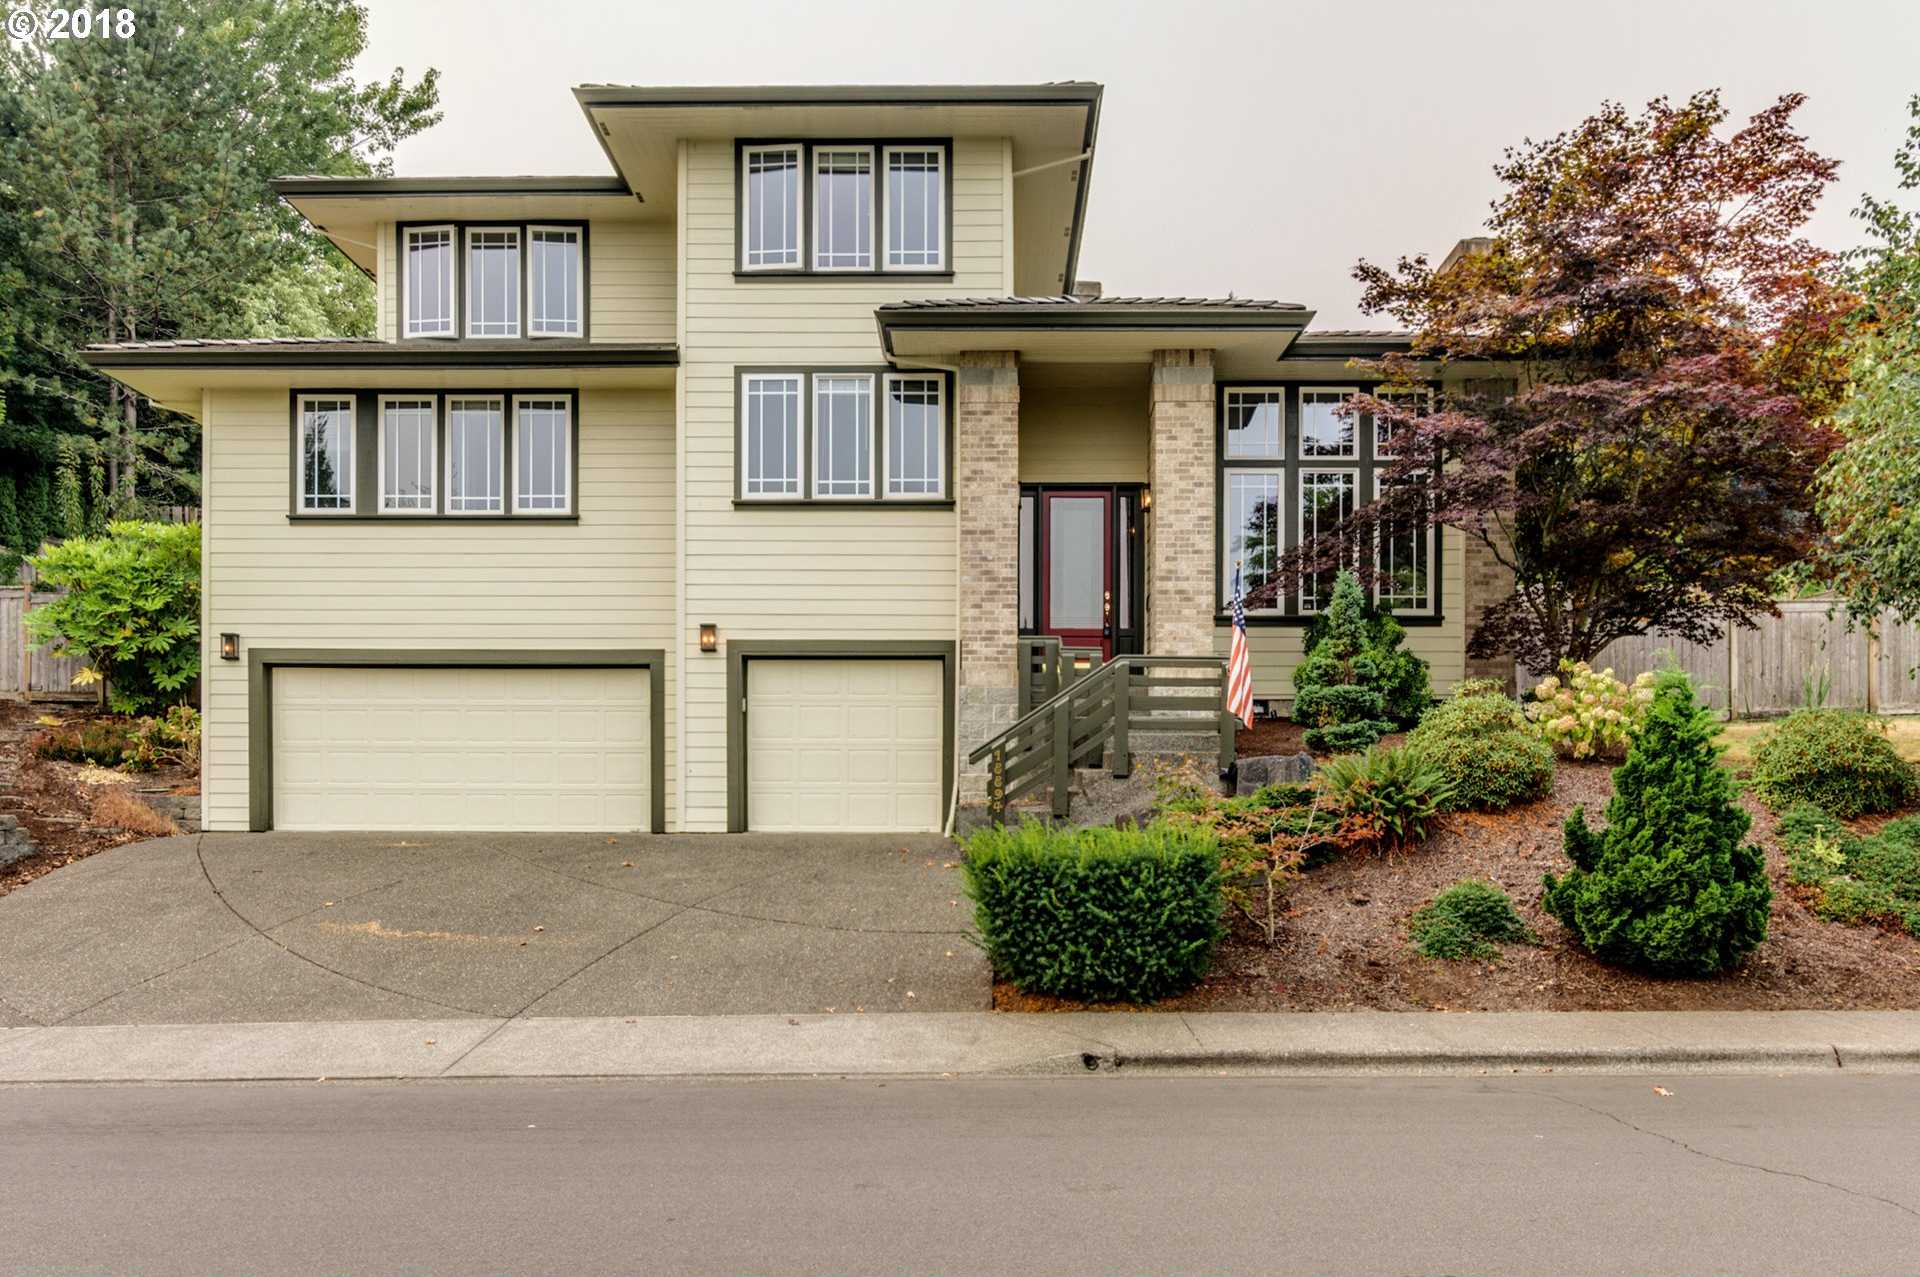 $485,000 - 4Br/3Ba -  for Sale in Beaverton